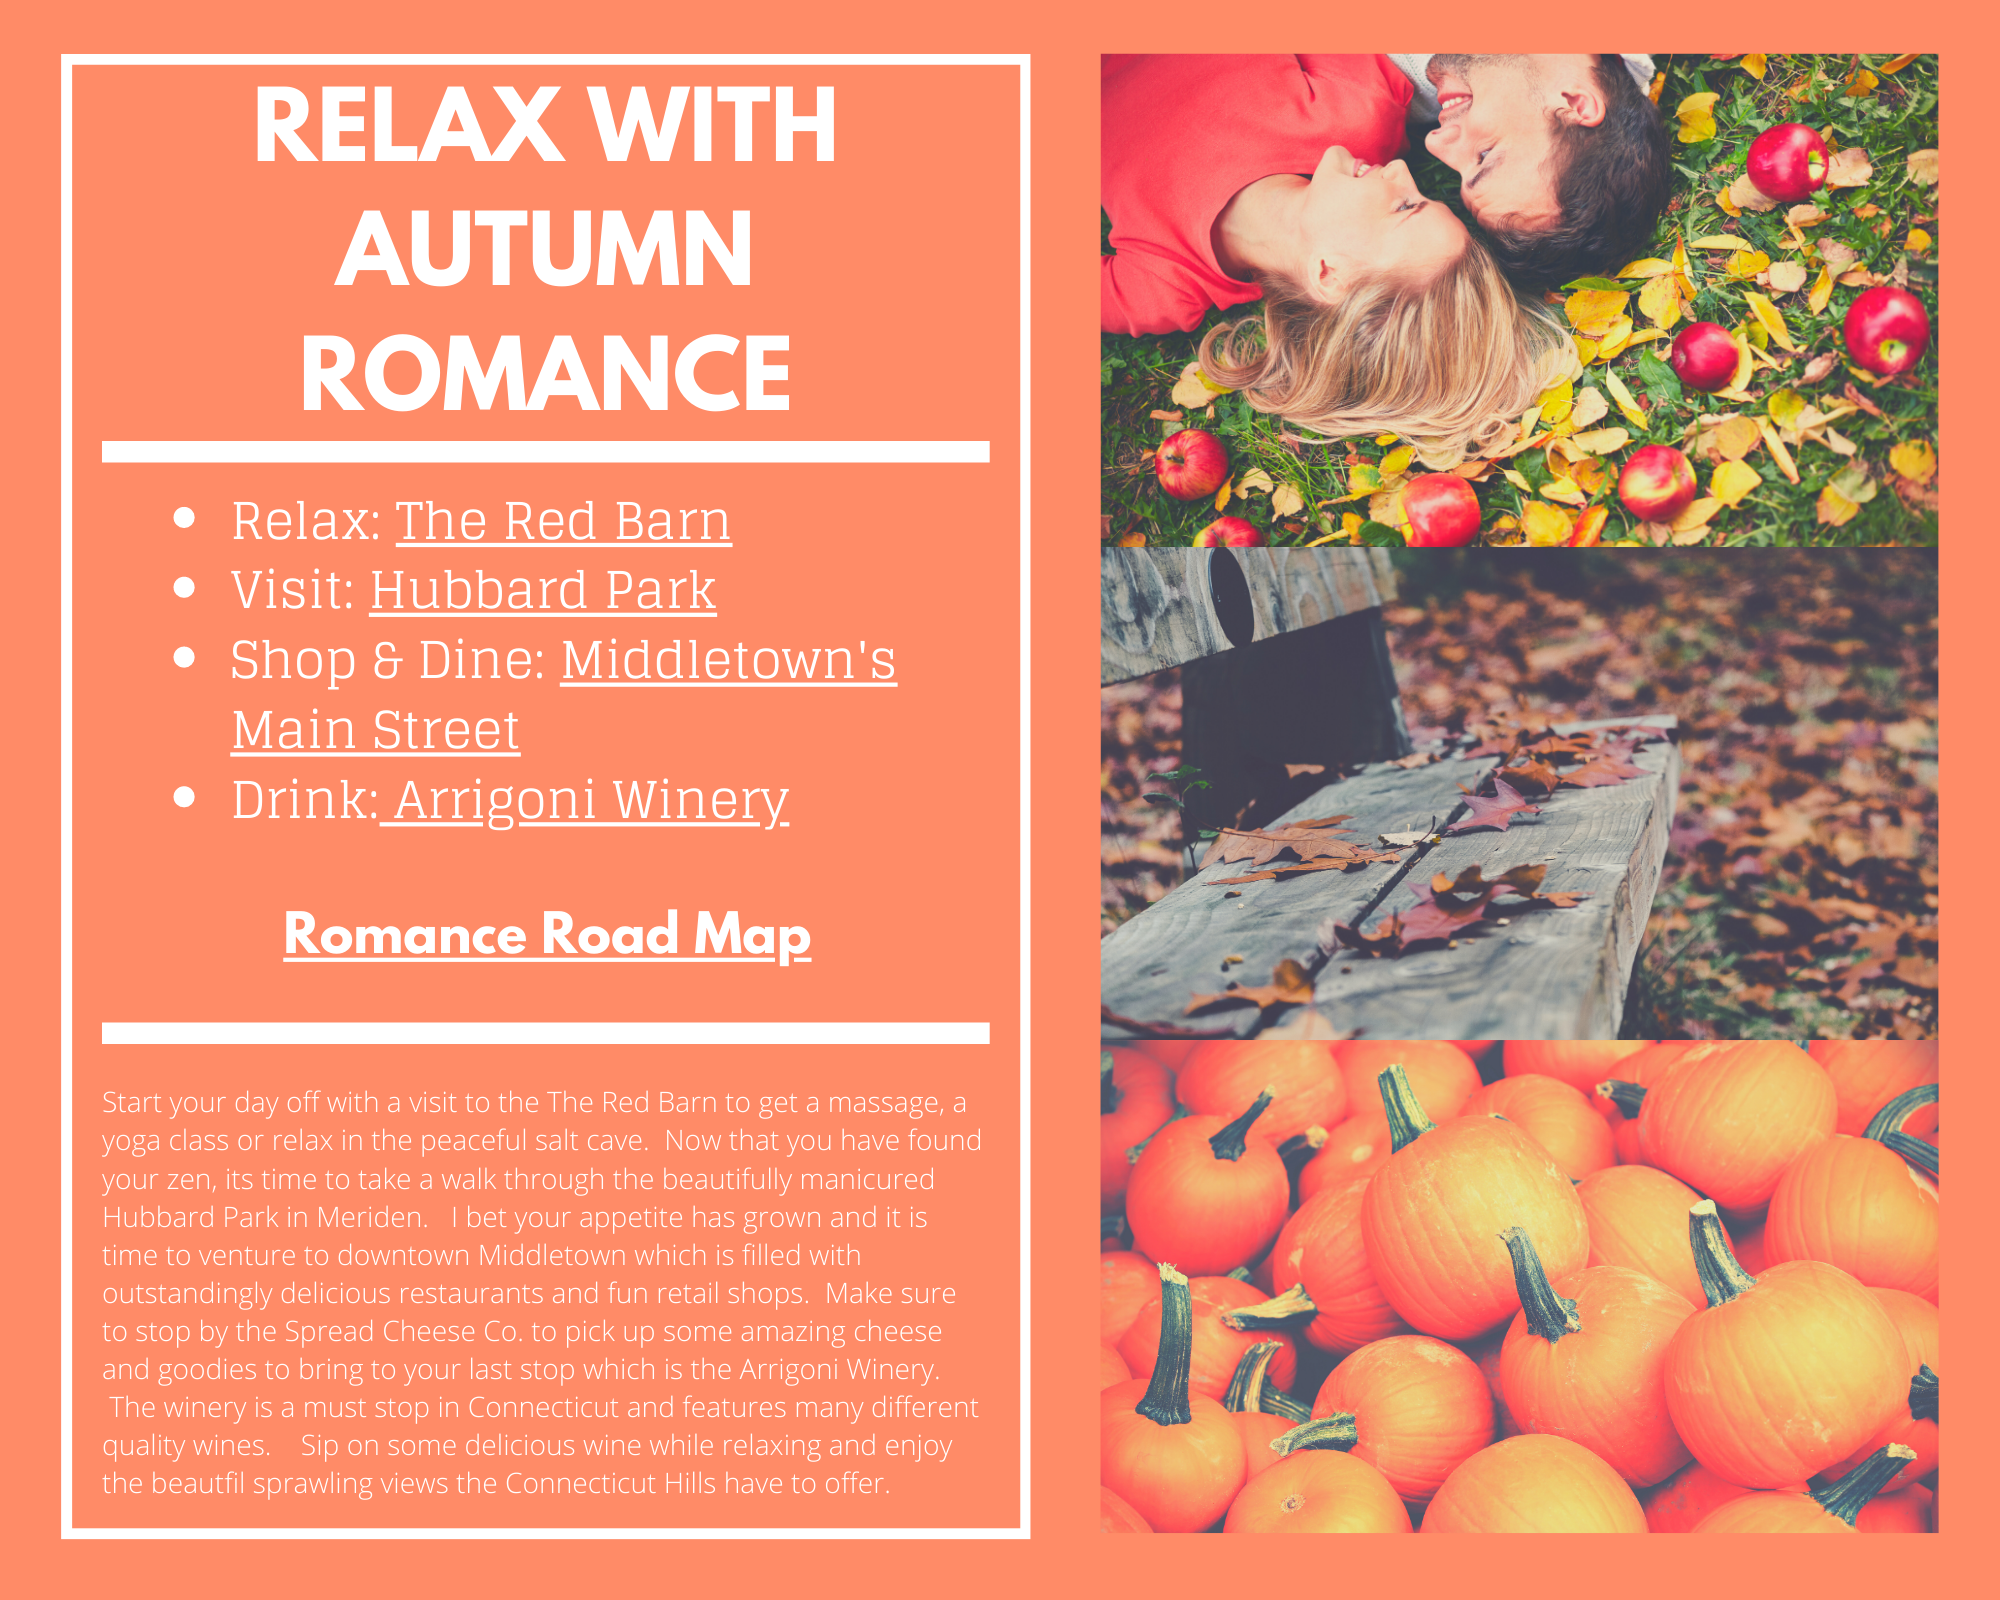 Relax with Autumn Romance